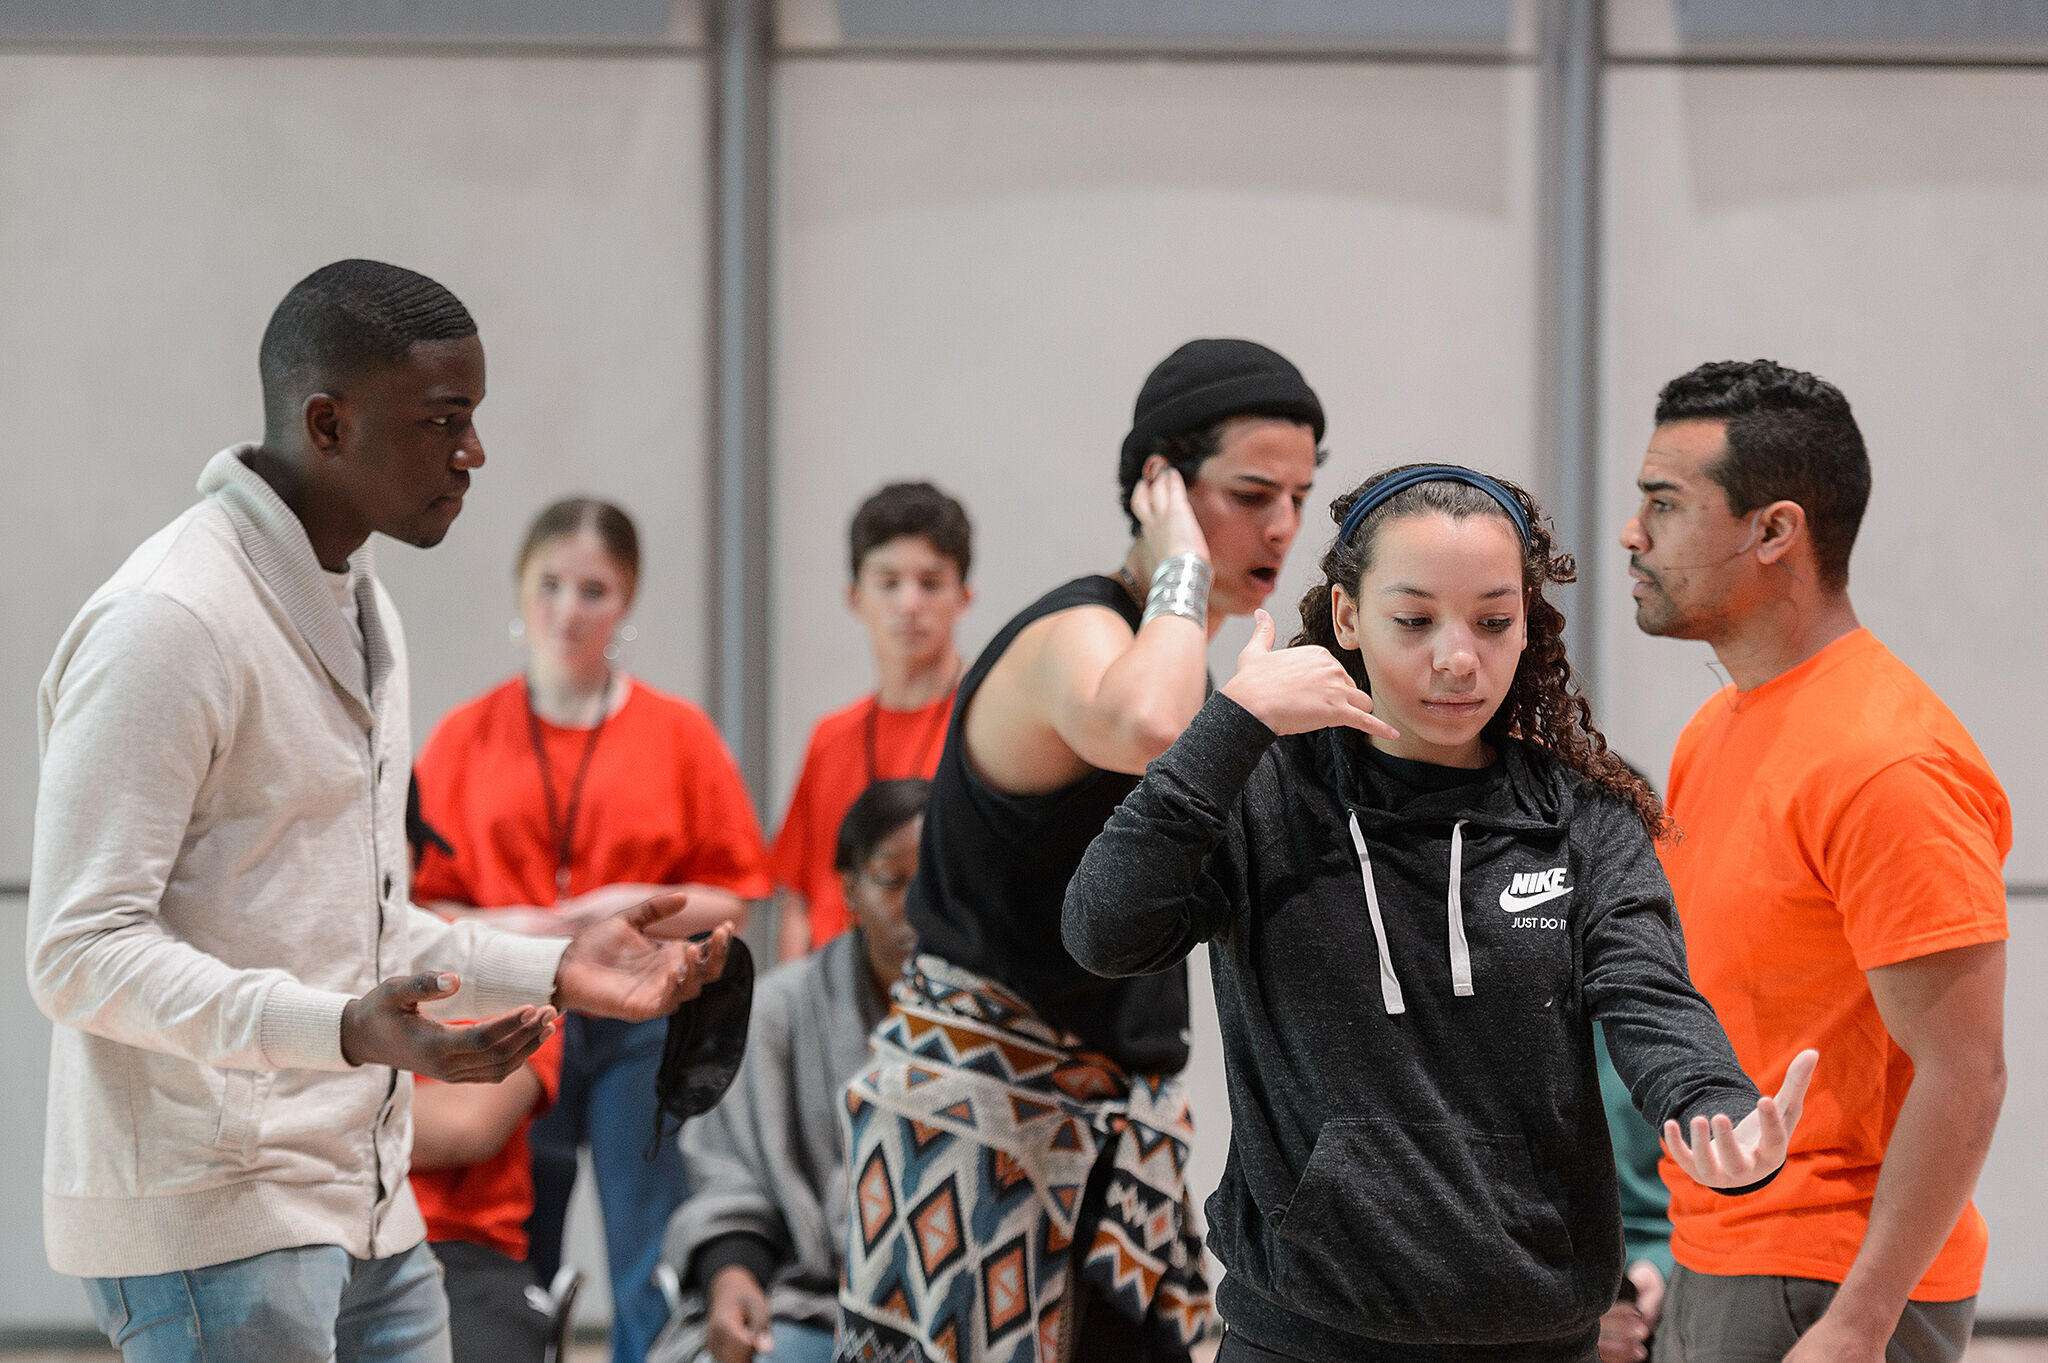 Instructor, Shaun Leonardo, instructs young dancers.